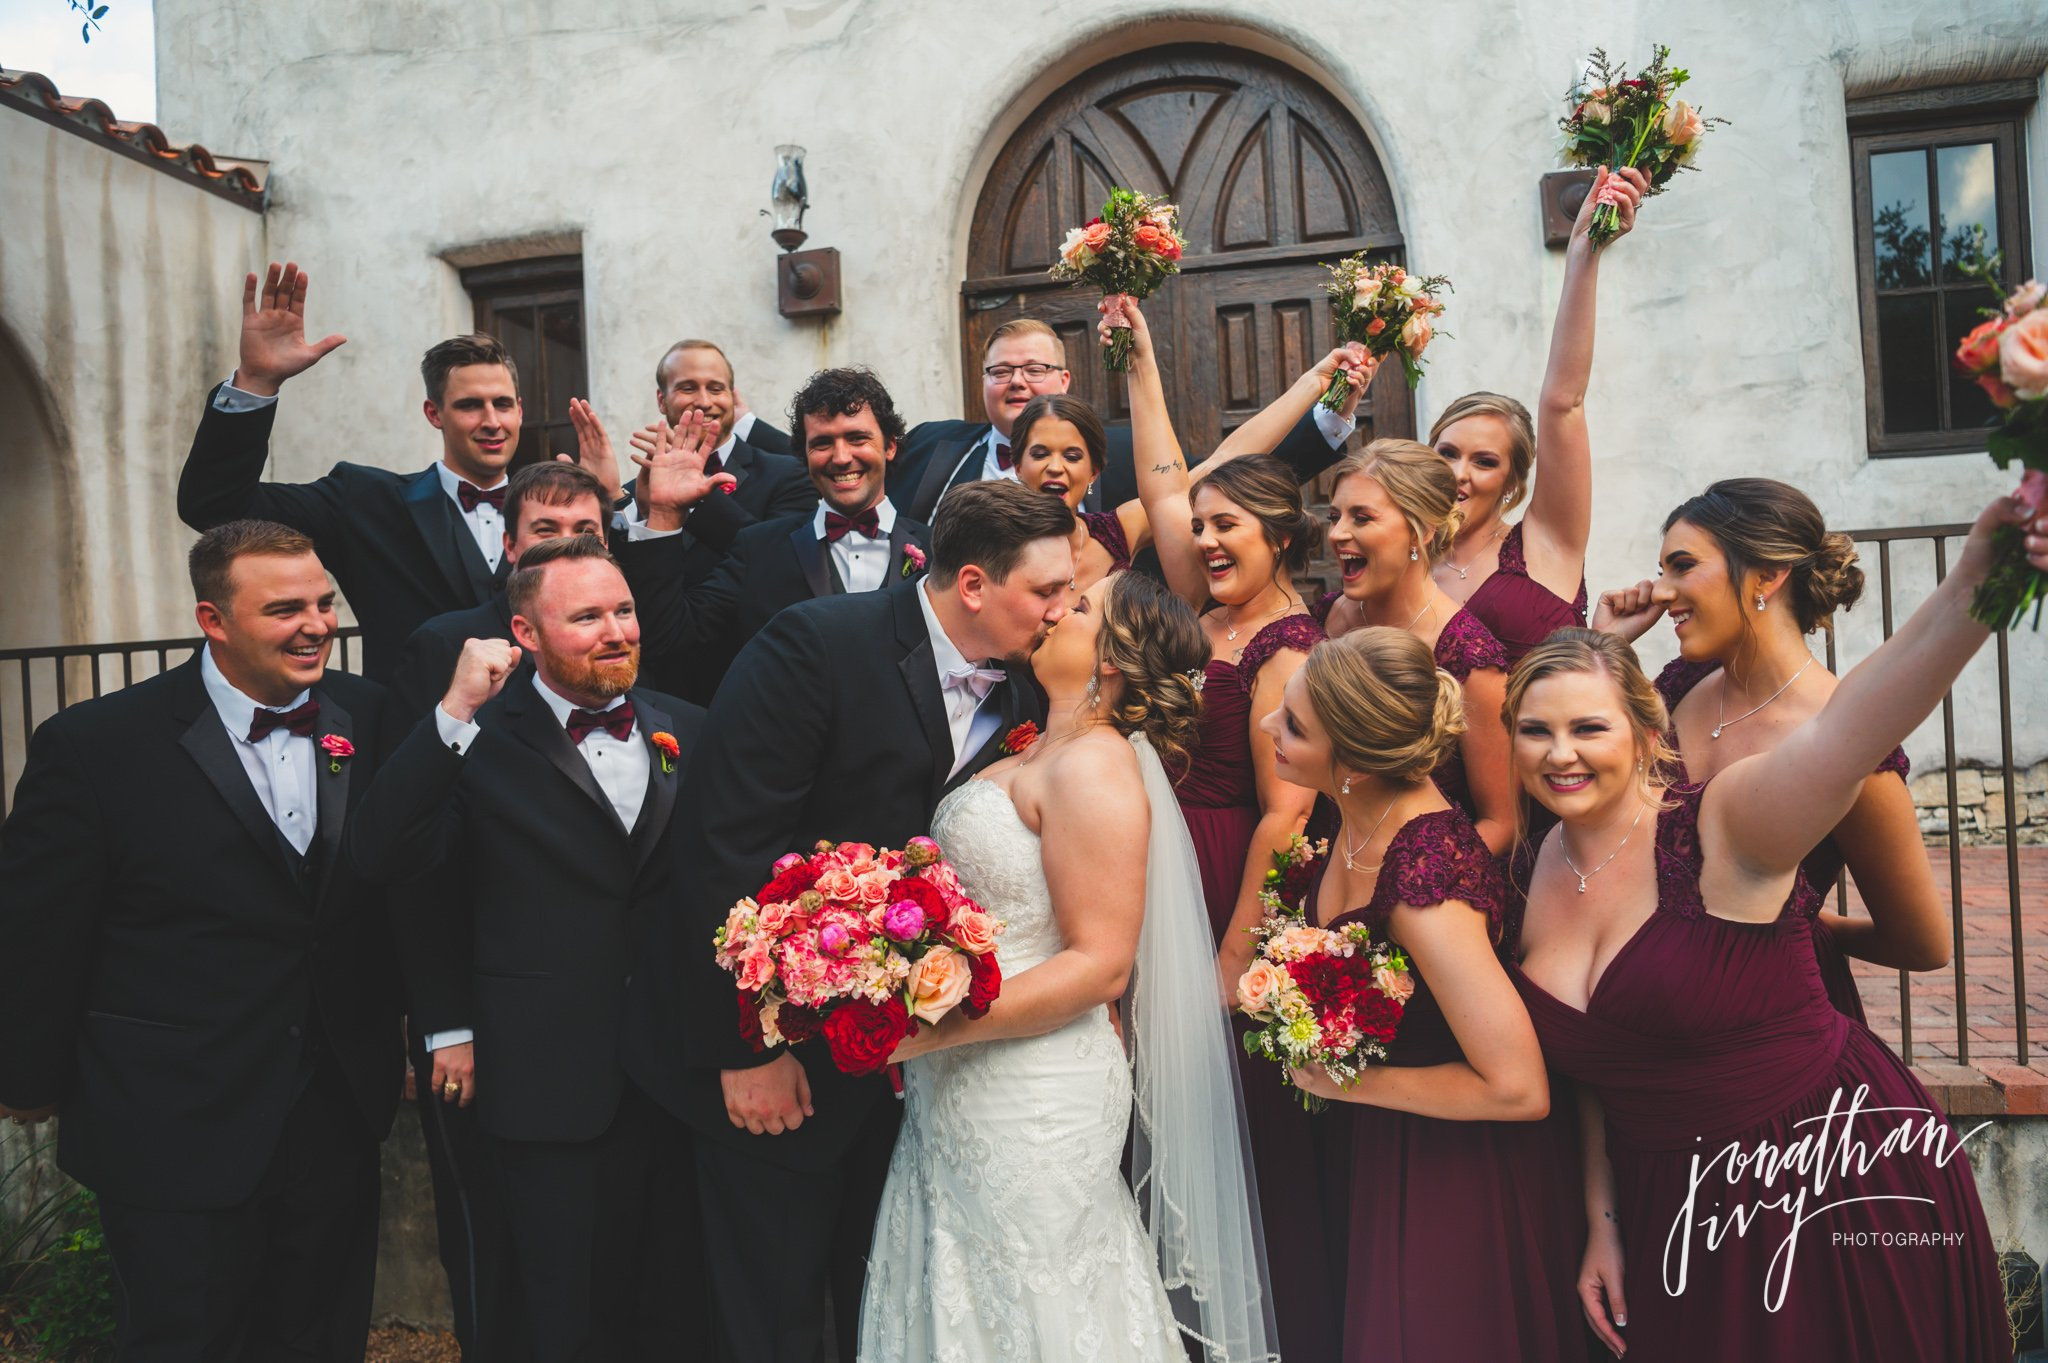 Lost Mission Wedding in San Antonio – Morgan & Zach